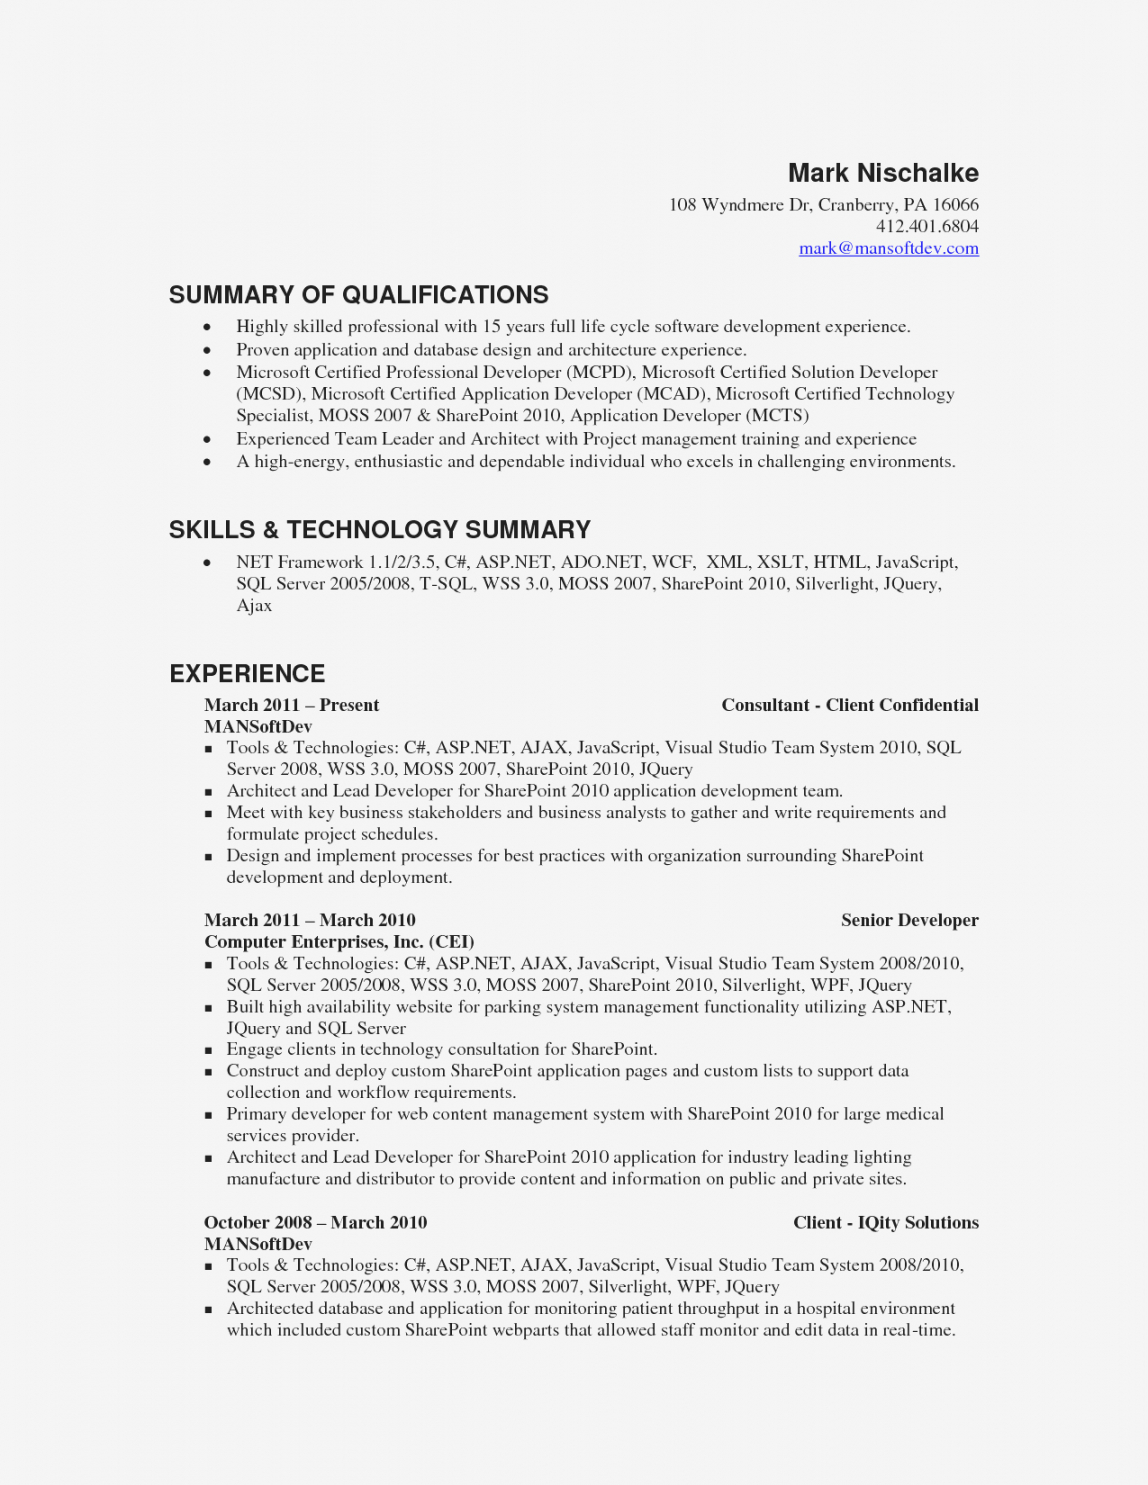 factory worker resume objectives mt home arts for job sample of template pdf soa federal Resume Resume For Factory Job